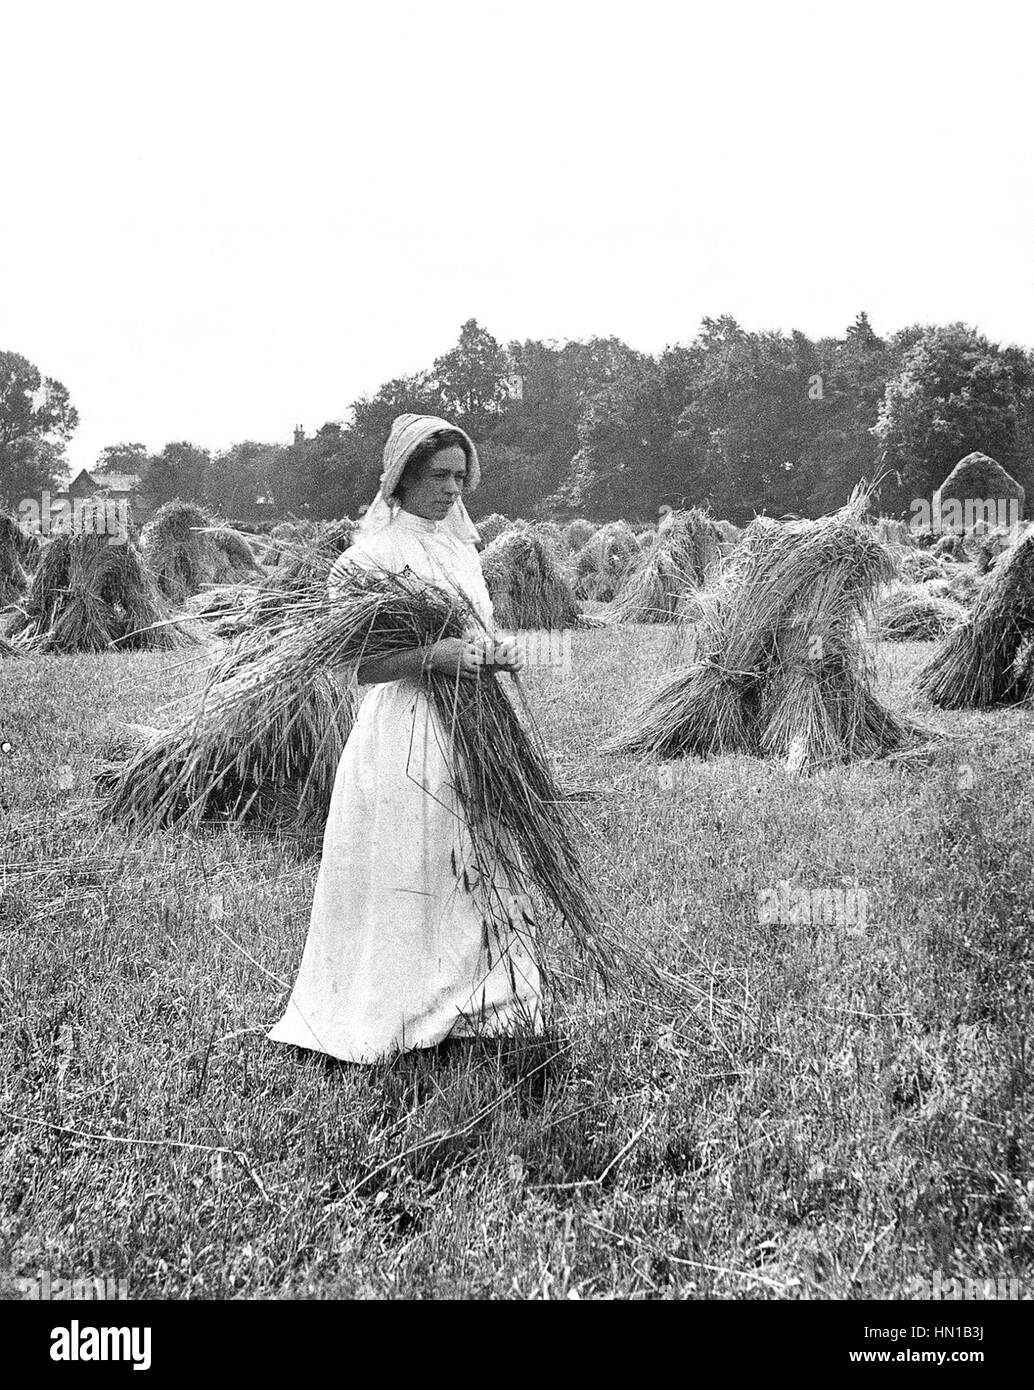 Edwardian period country farm girl making hay 1900s - Stock Image